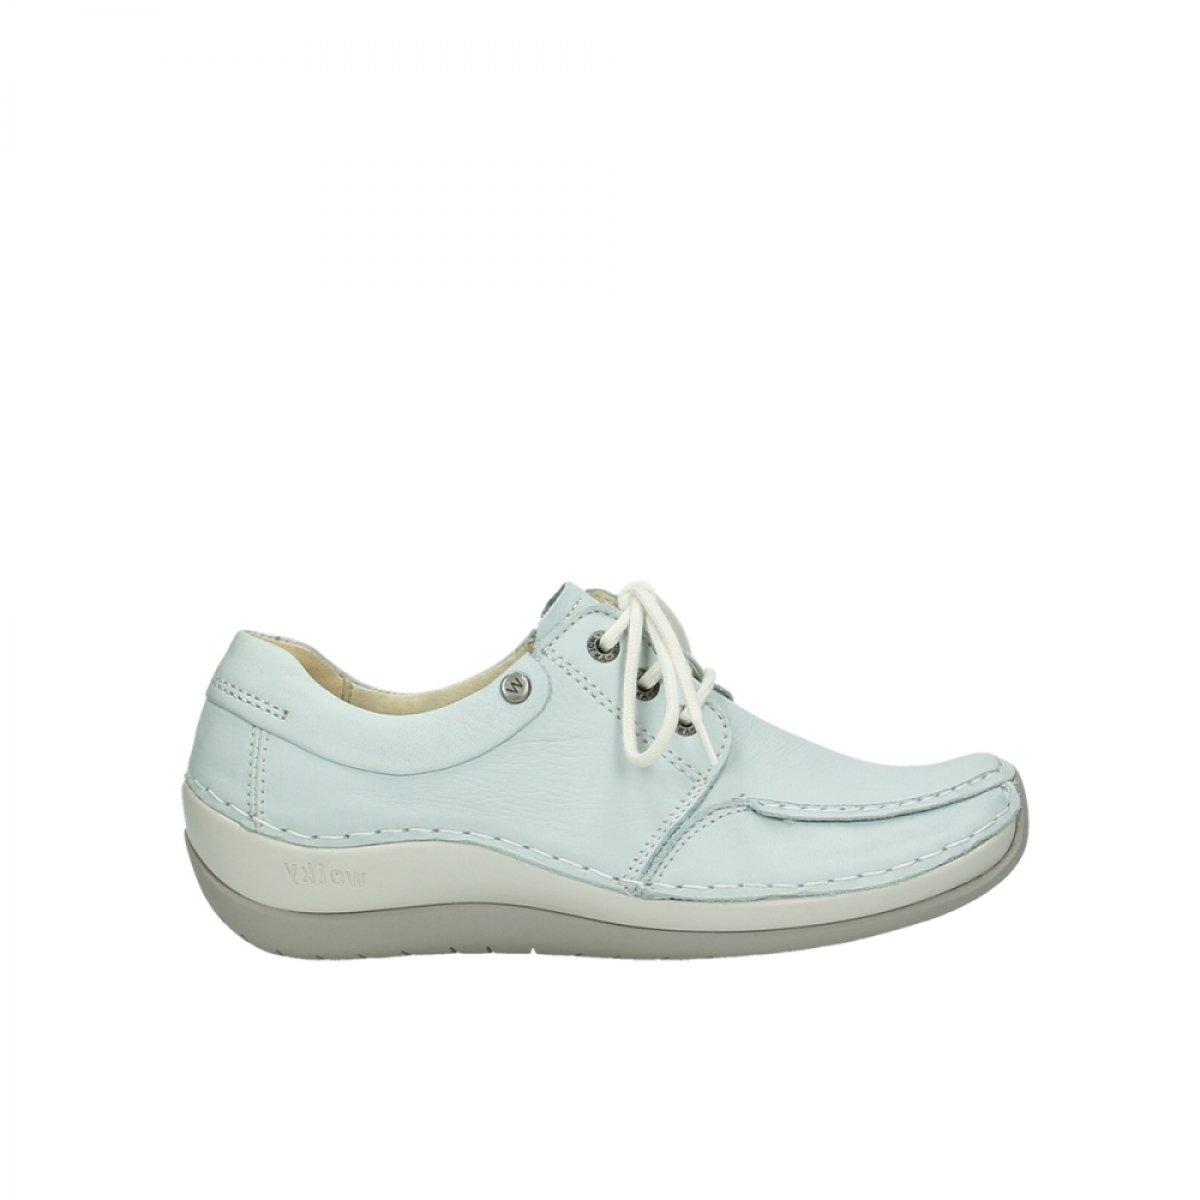 Wolky Comfort Jewel B01DP39VVC 37 M EU|20850 Ice Blue Leather